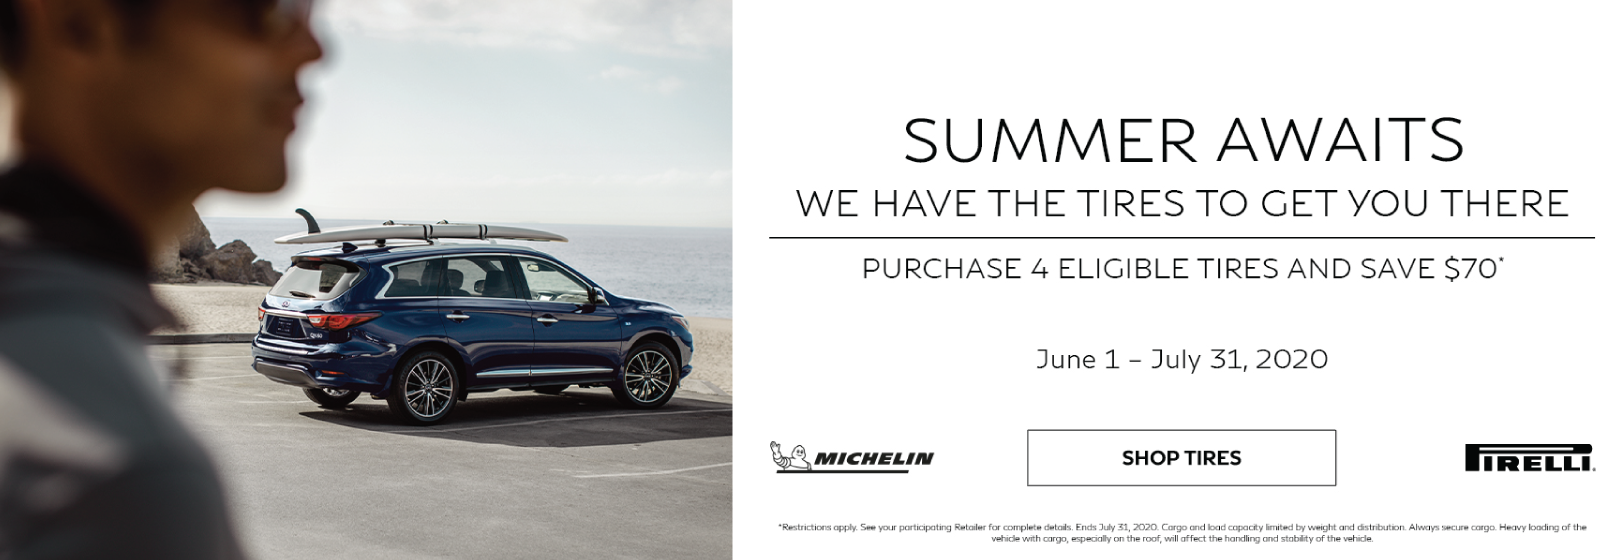 Purchase 4 eligible tires and save $70. See service team for details. Offer expires July 31, 2020